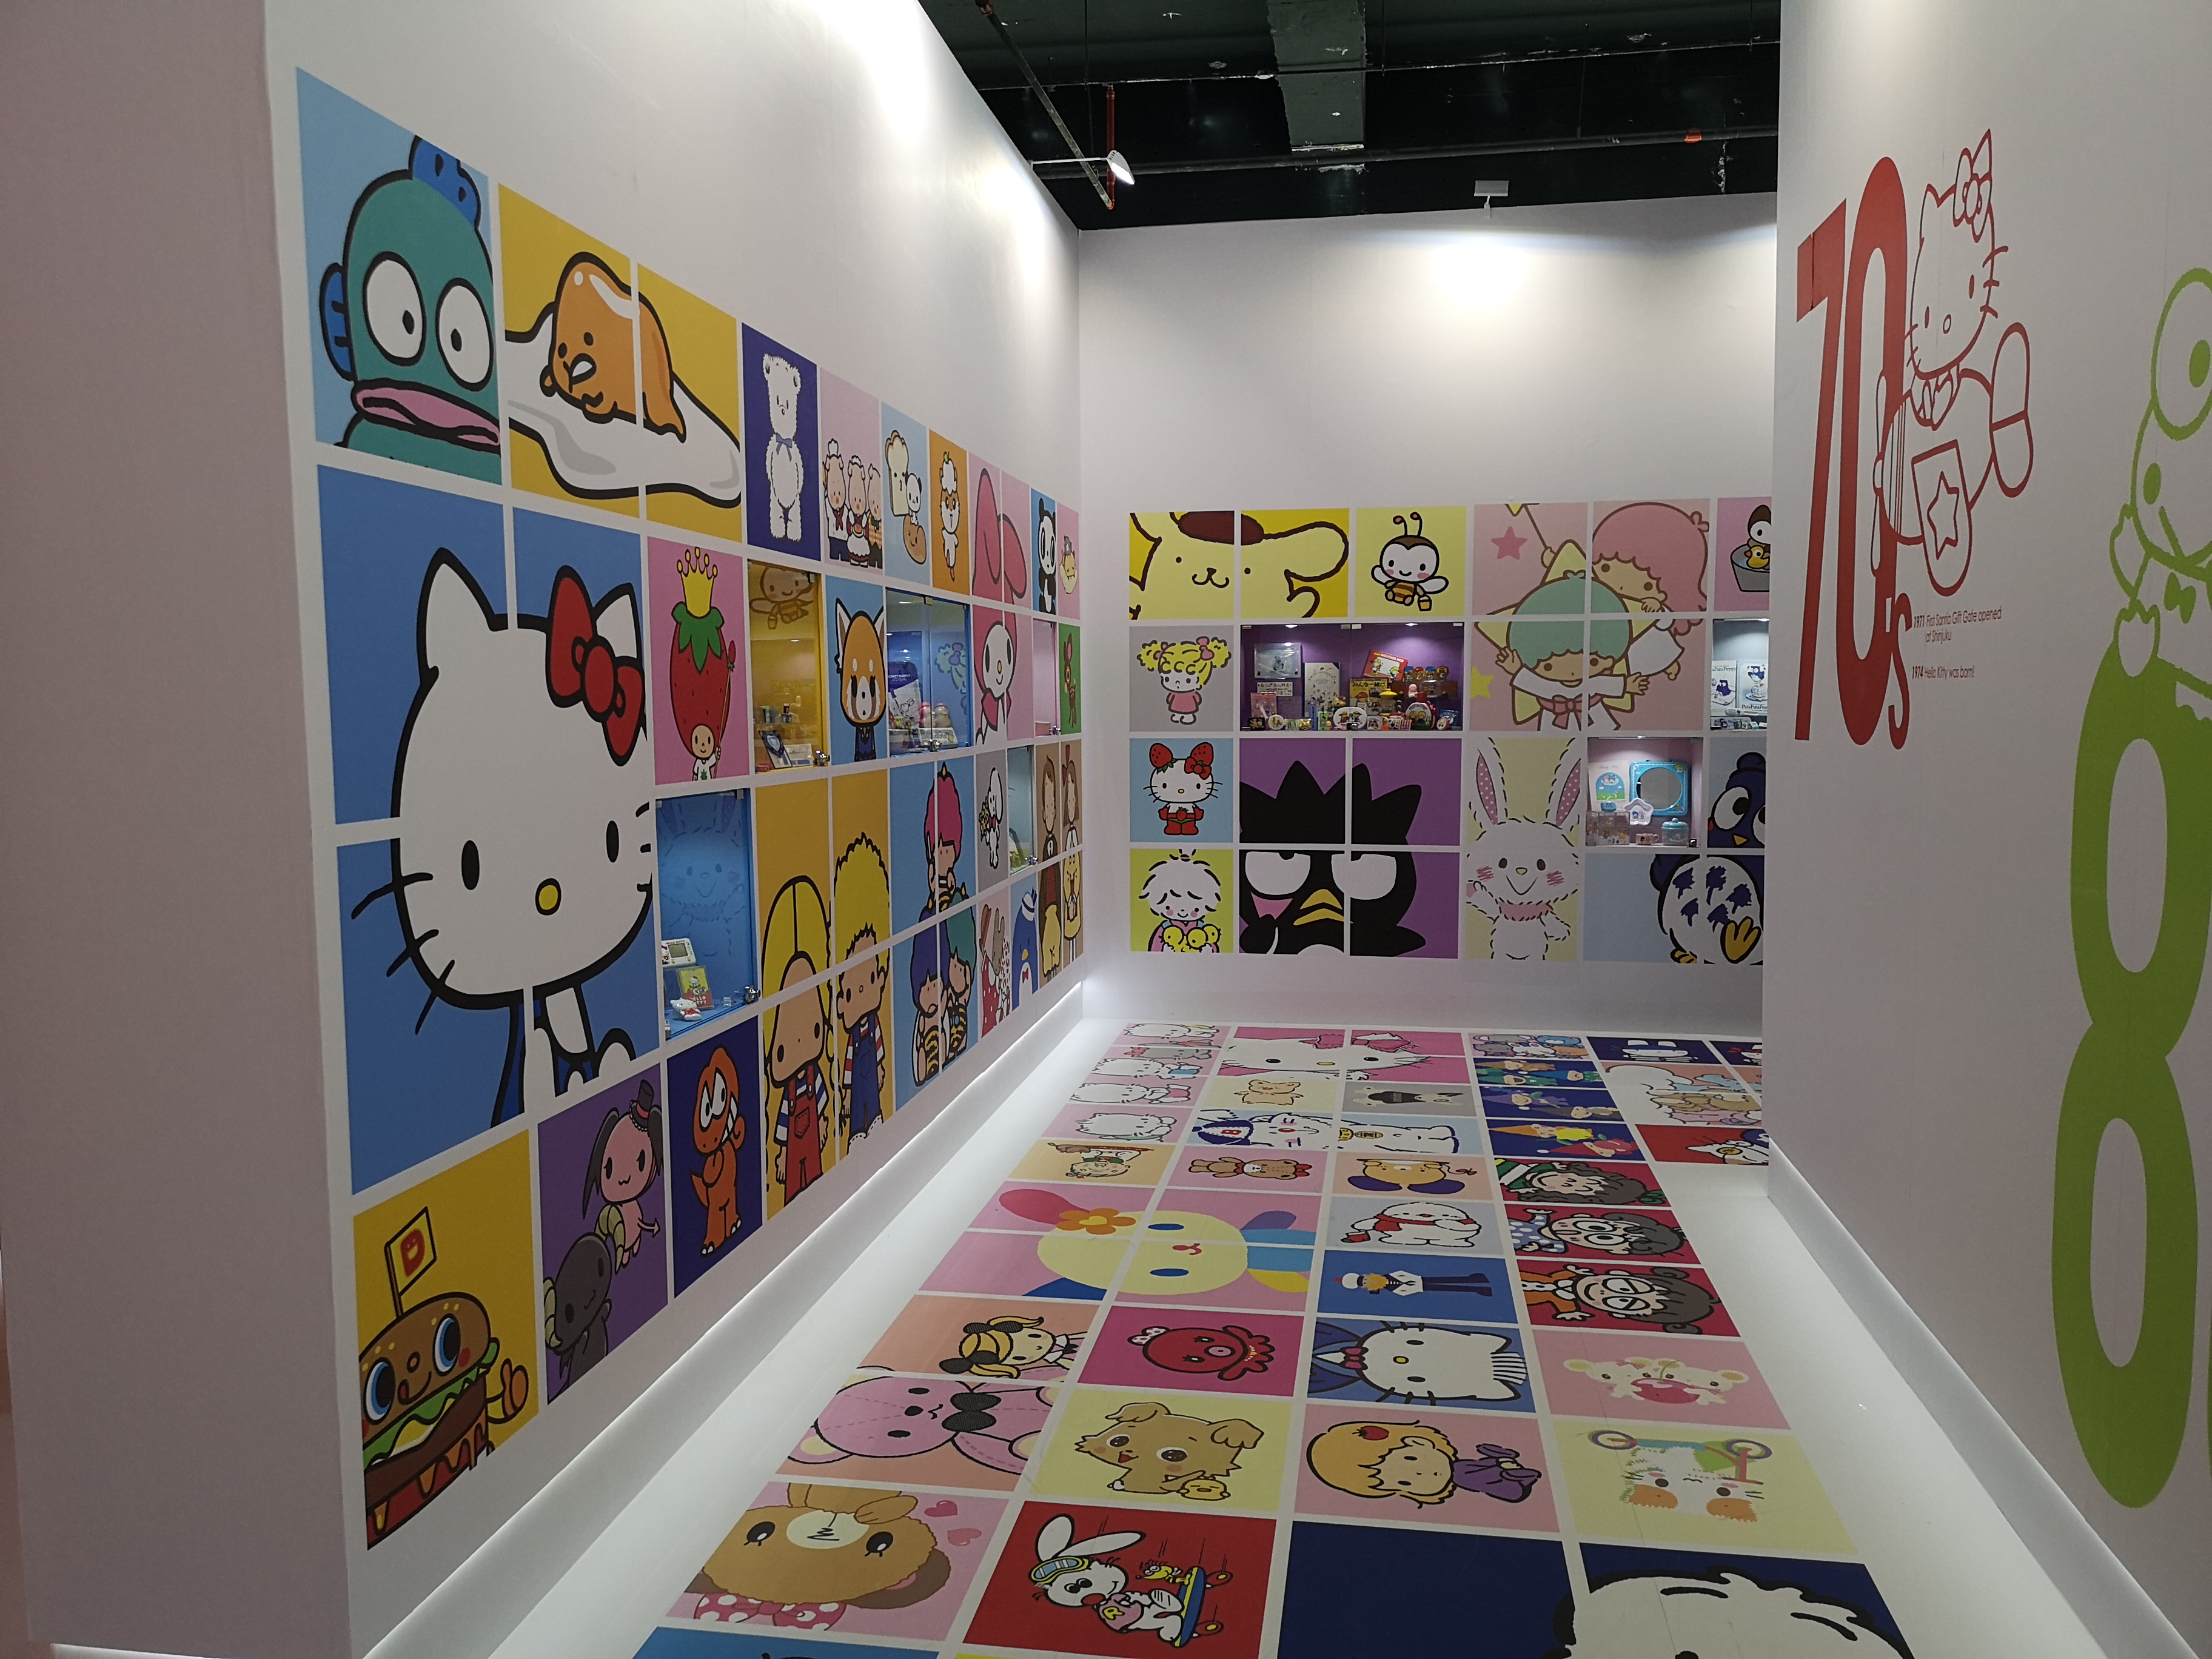 d8f3d7048 5 'Kawaii' Reasons to Check Out 'Our Sanrio Times' Exhibition in KL